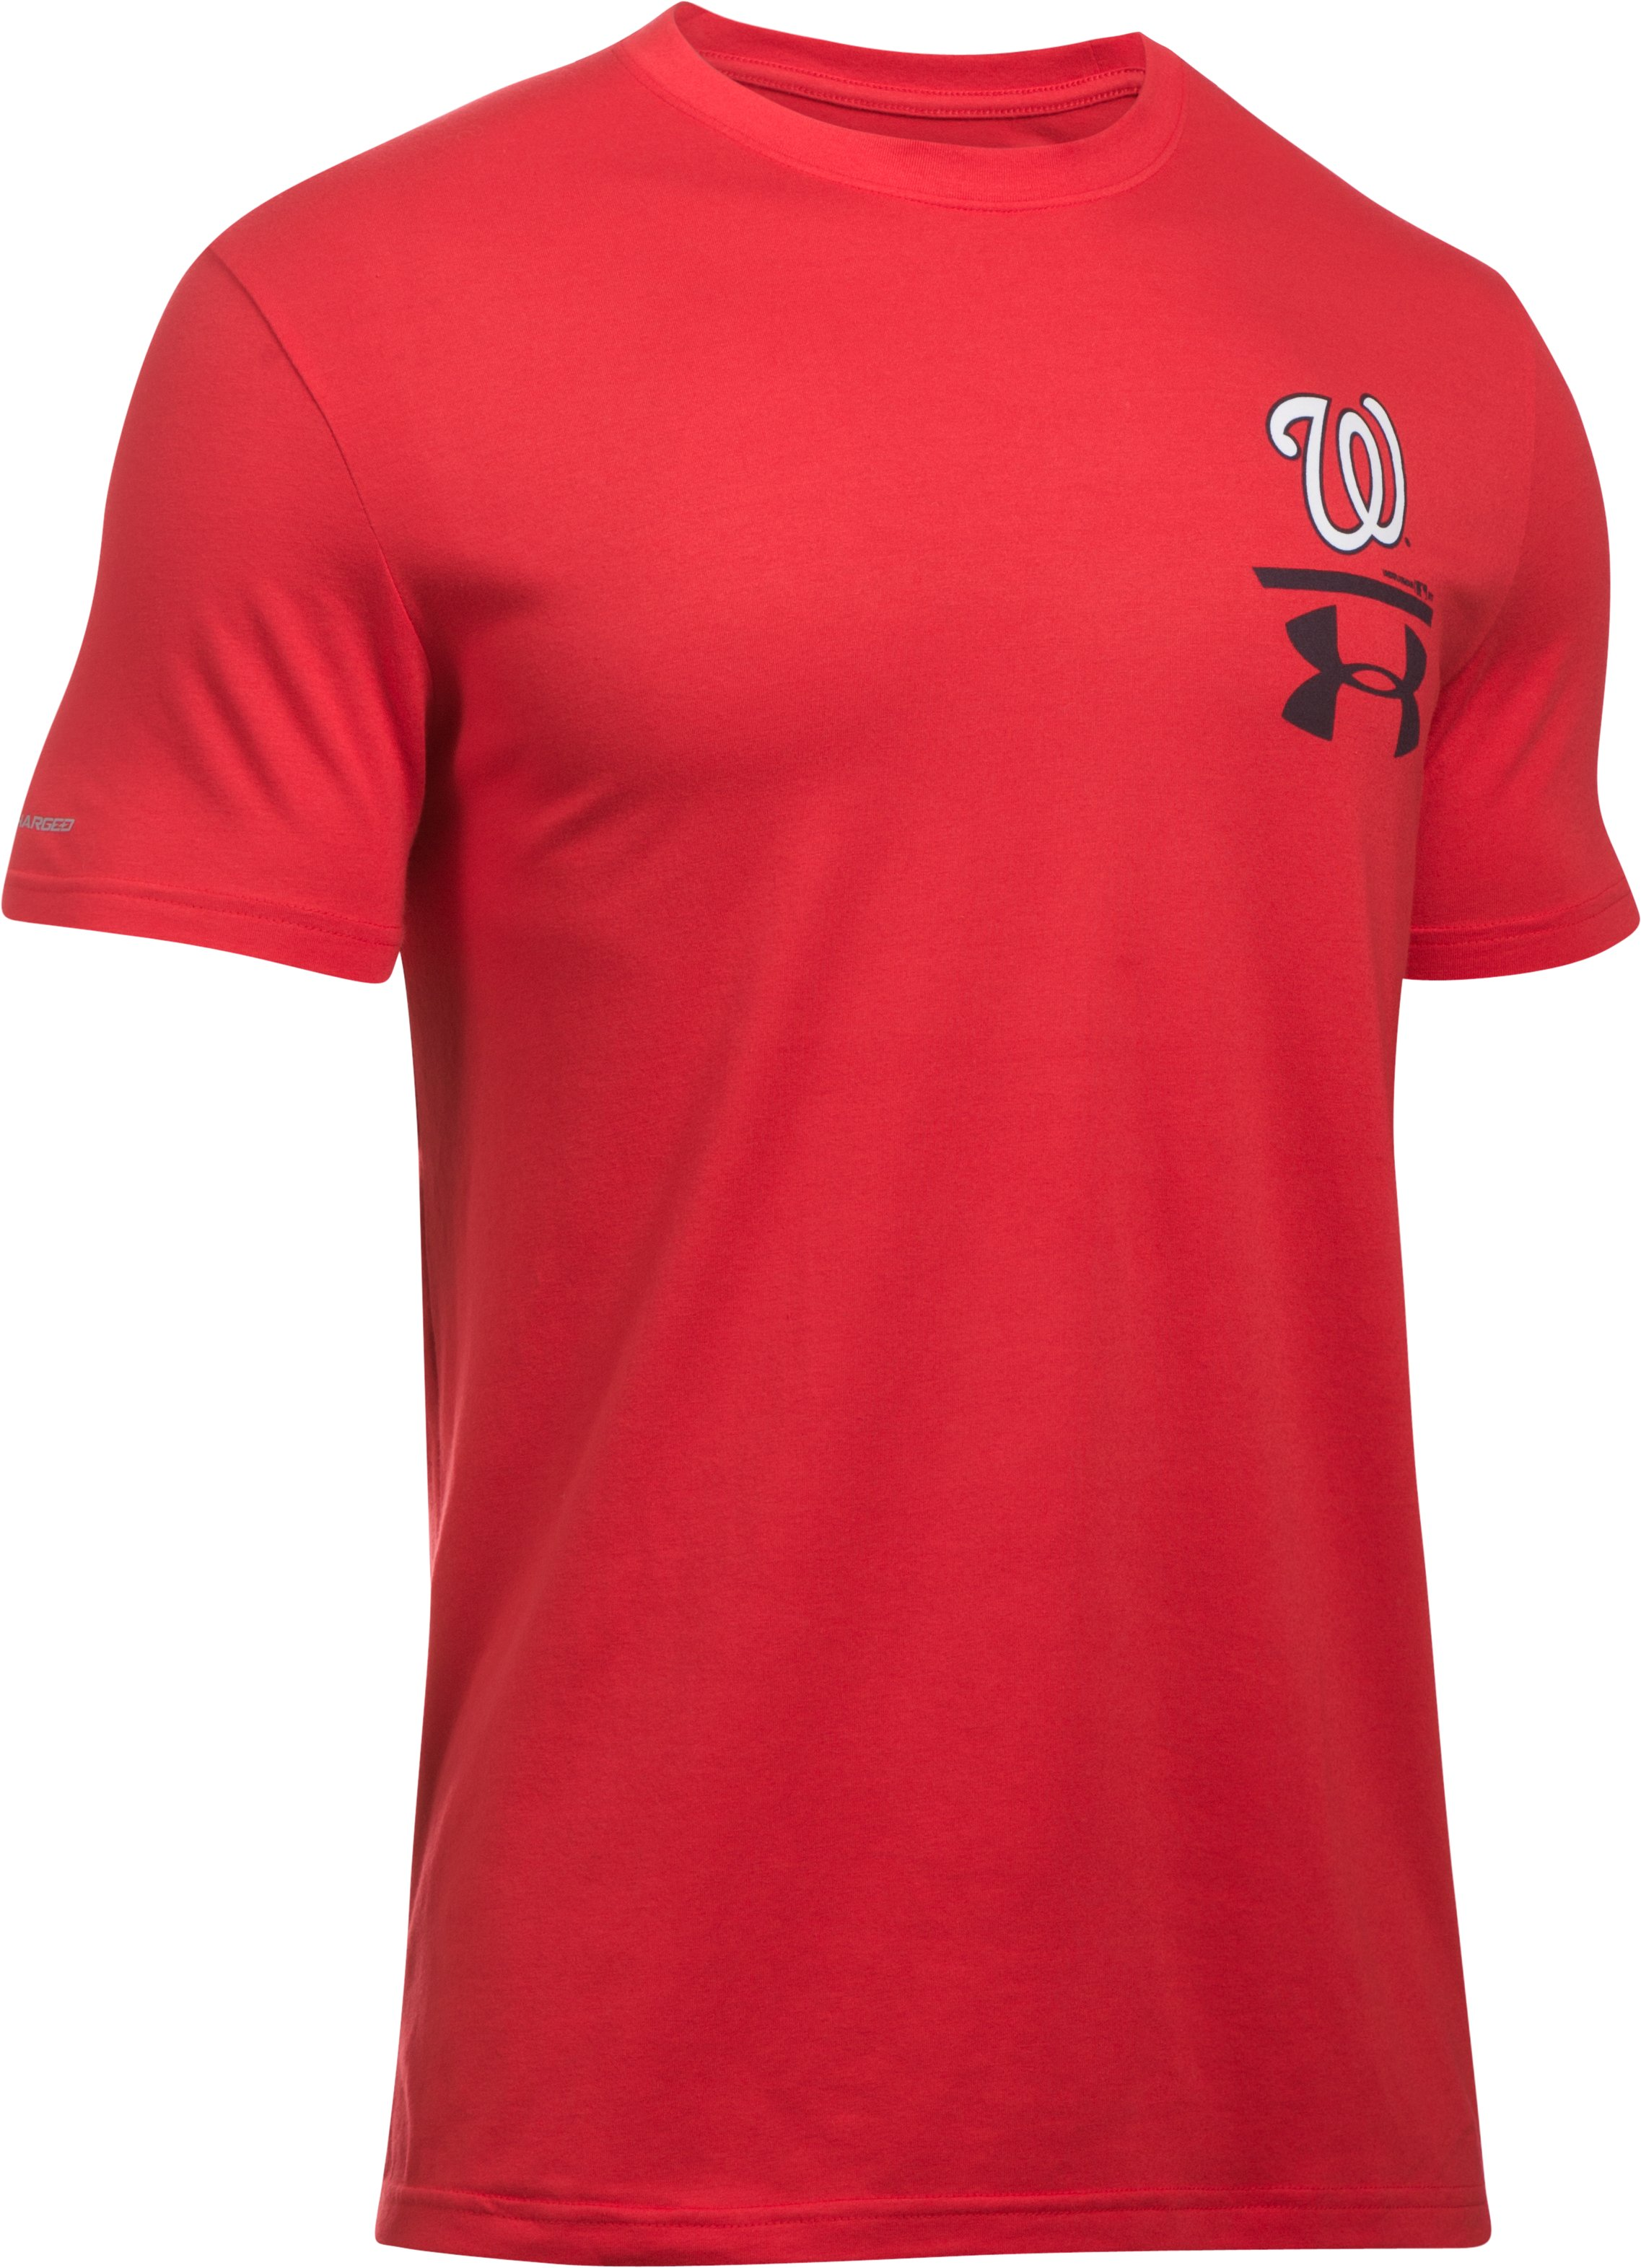 Men's Washington Nationals Logo T-Shirt, Red,